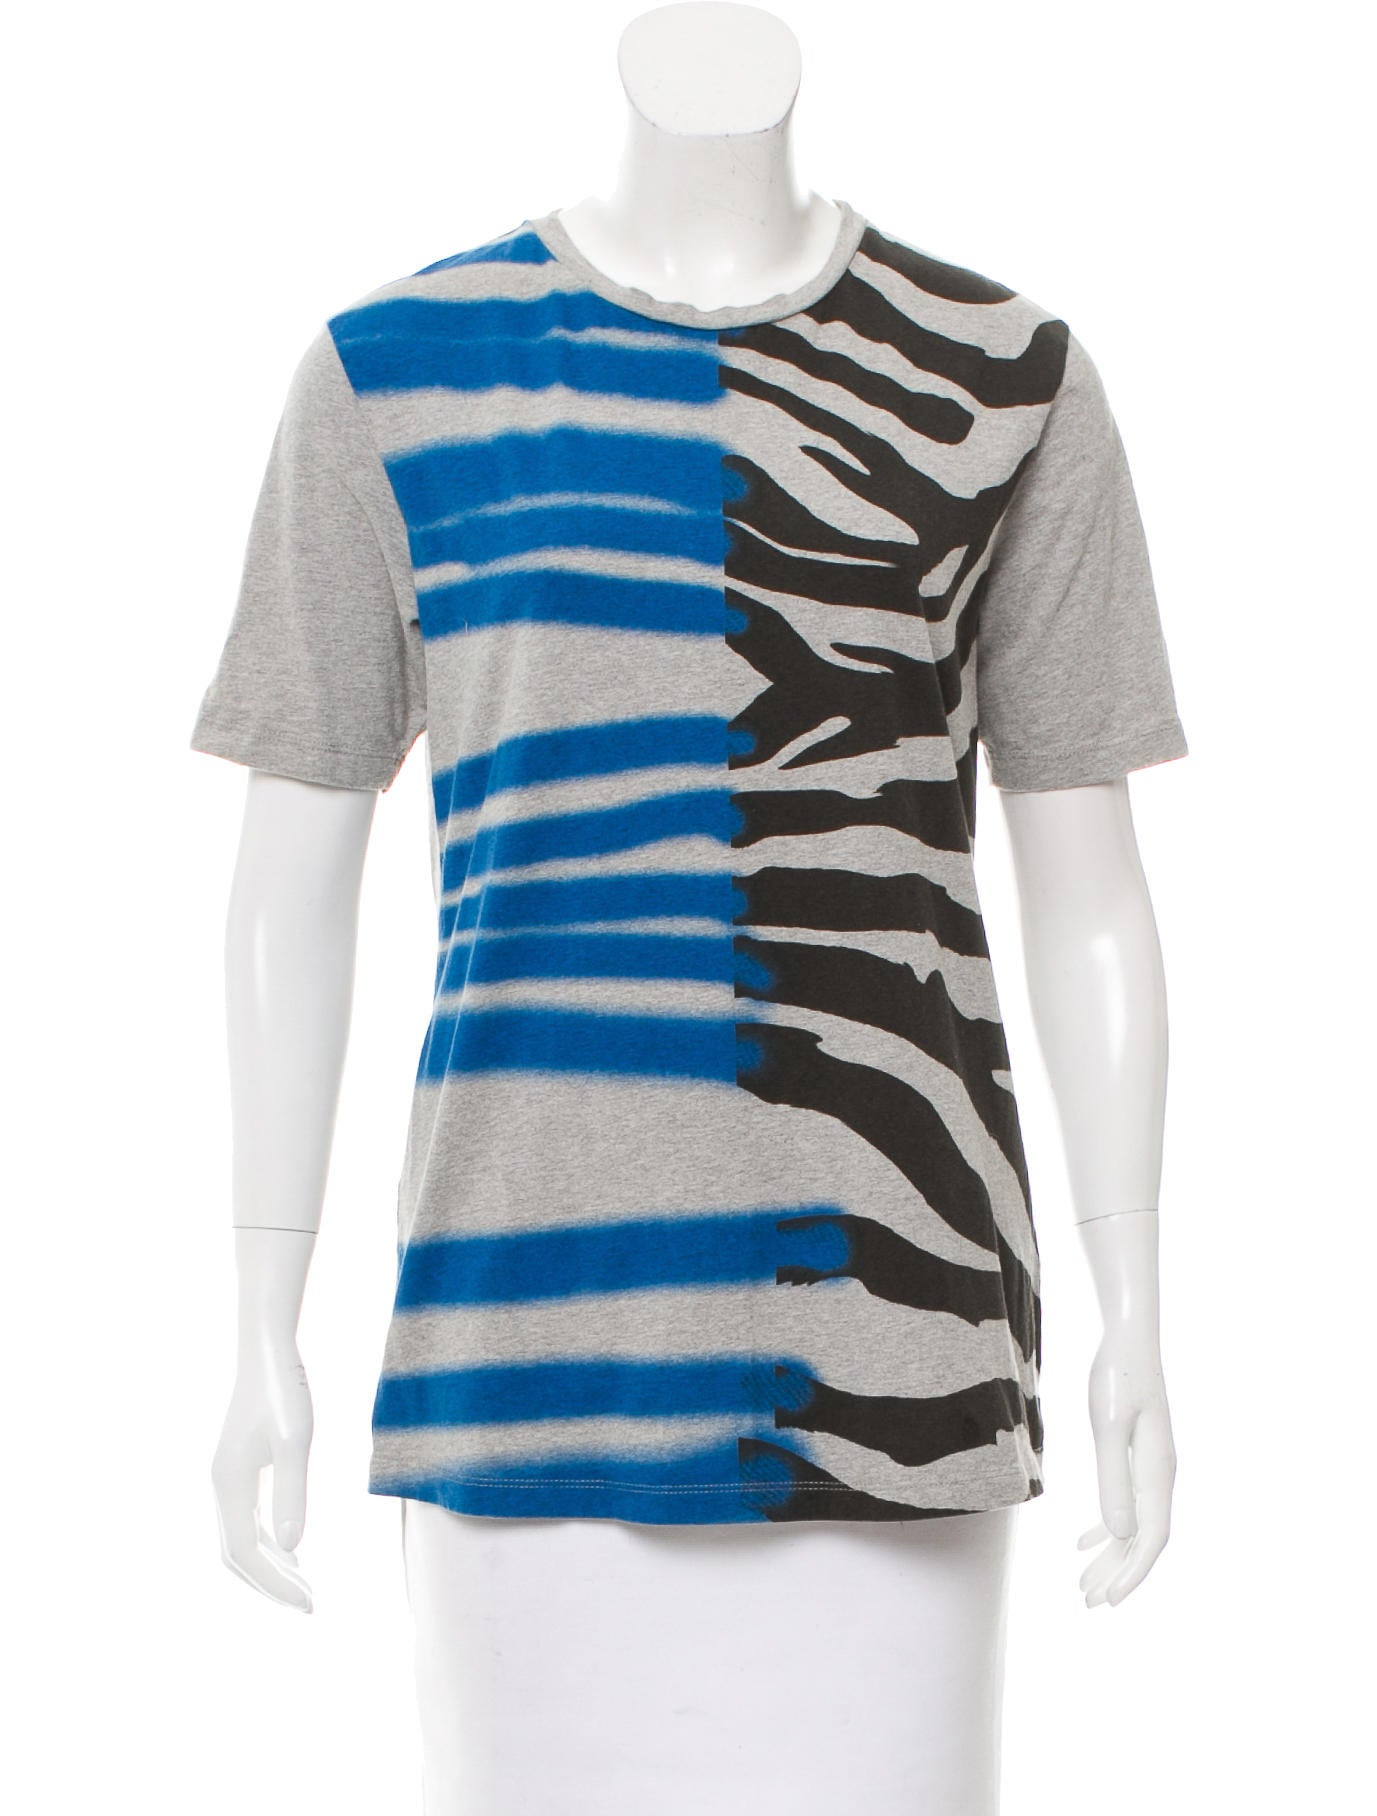 Tre c cile printed crew neck t shirt clothing for Collar t shirt printing